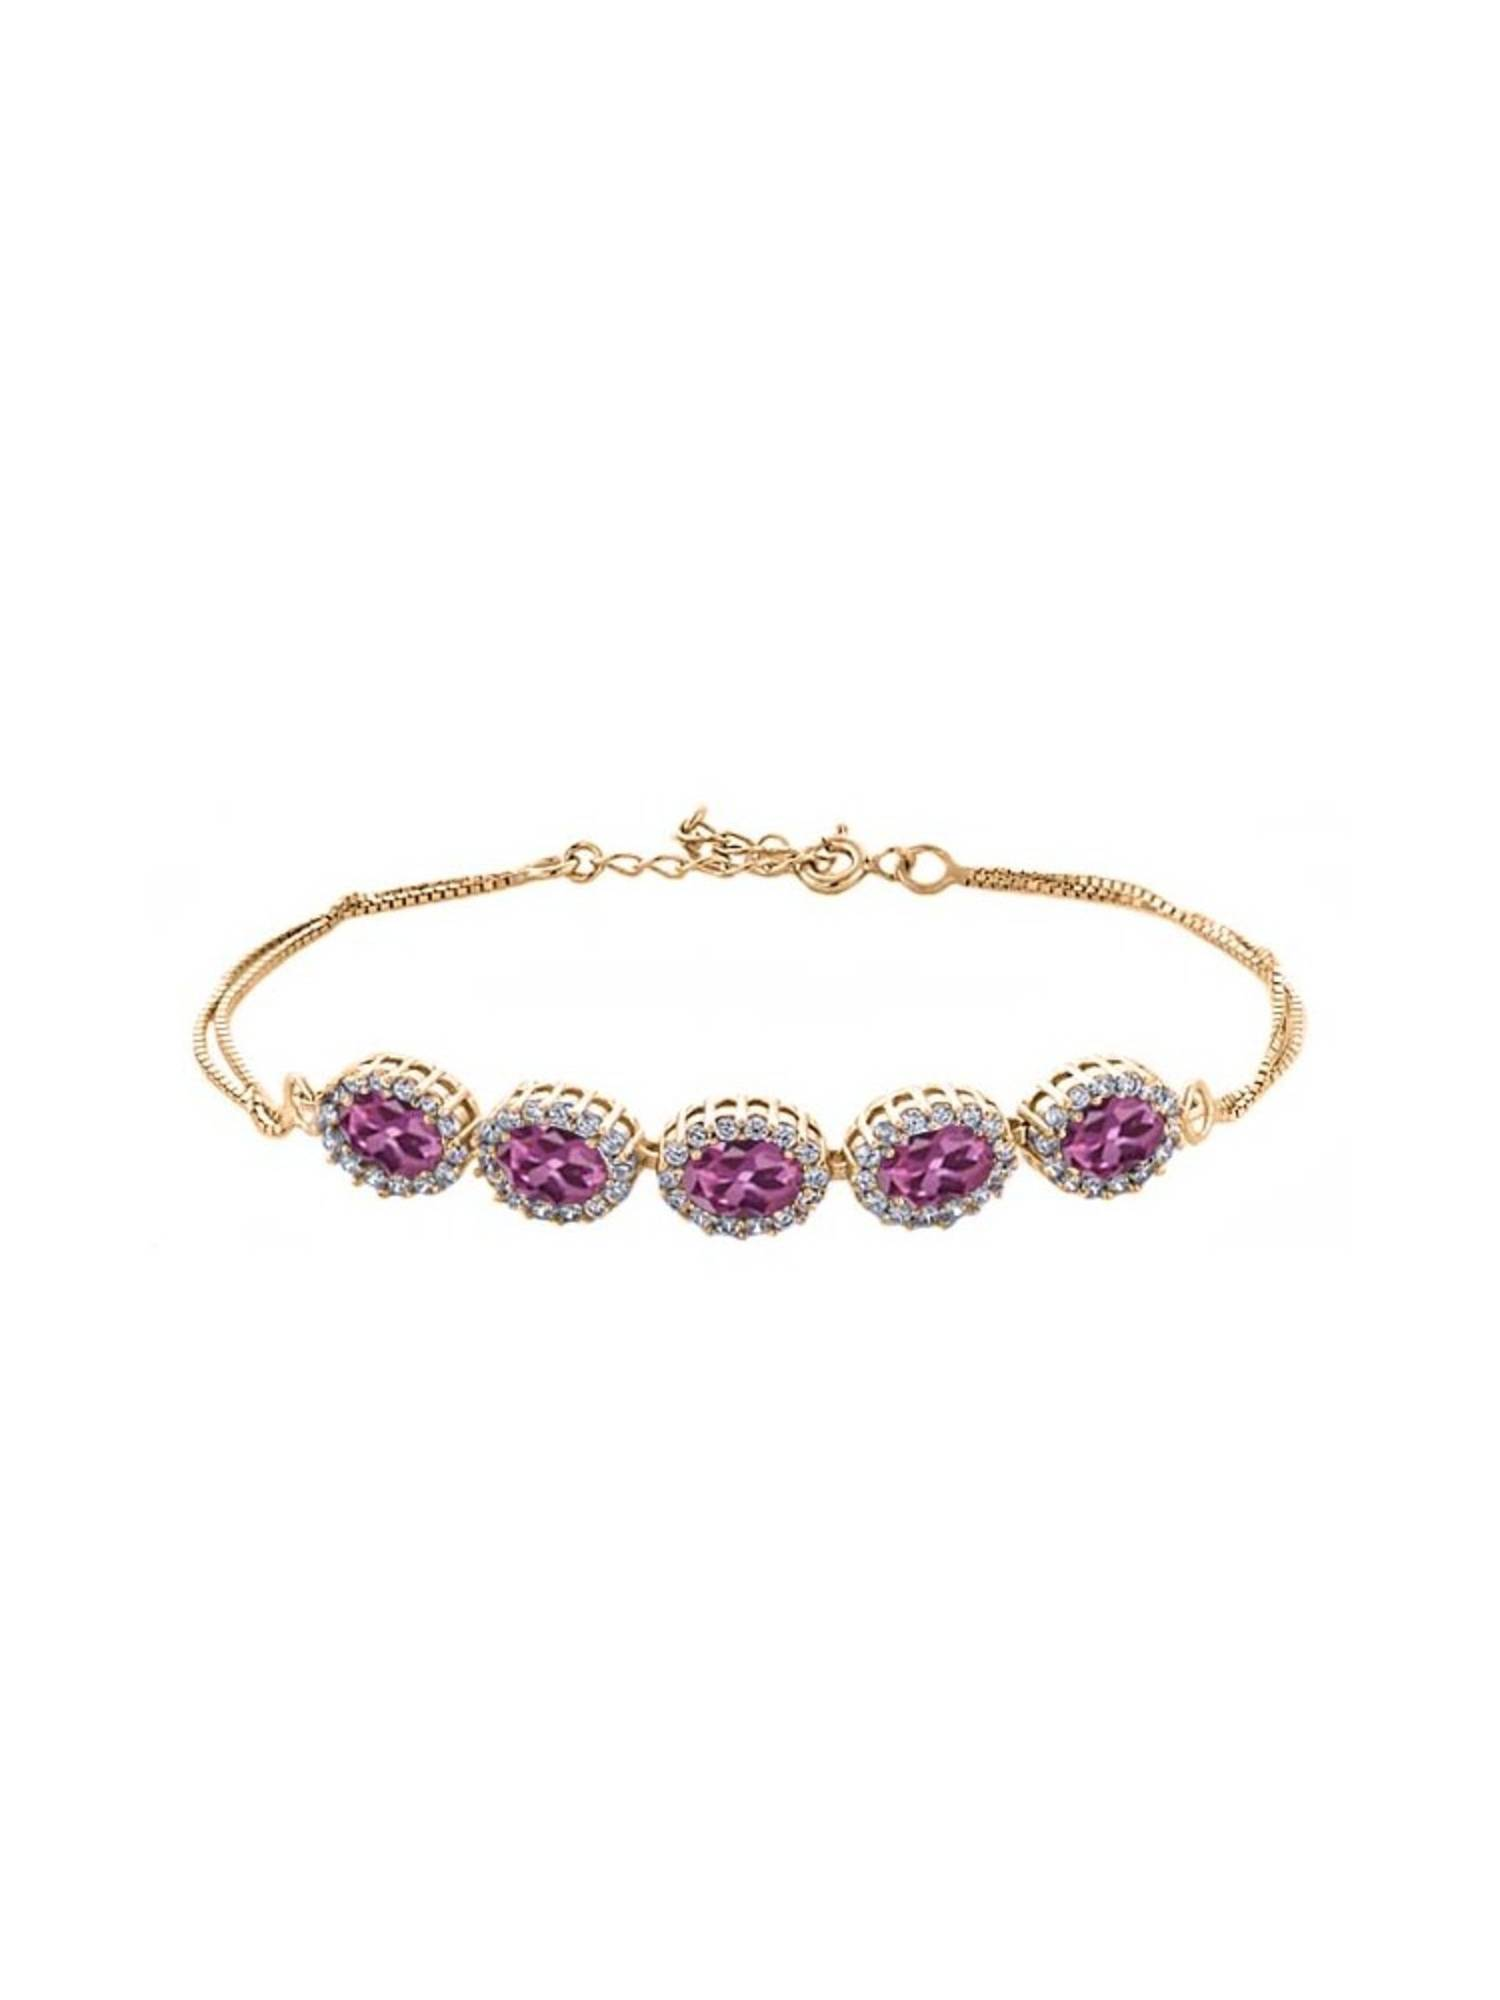 5.29 Ct Oval Pink Tourmaline 18K Yellow Gold Plated Silver Bracelet by